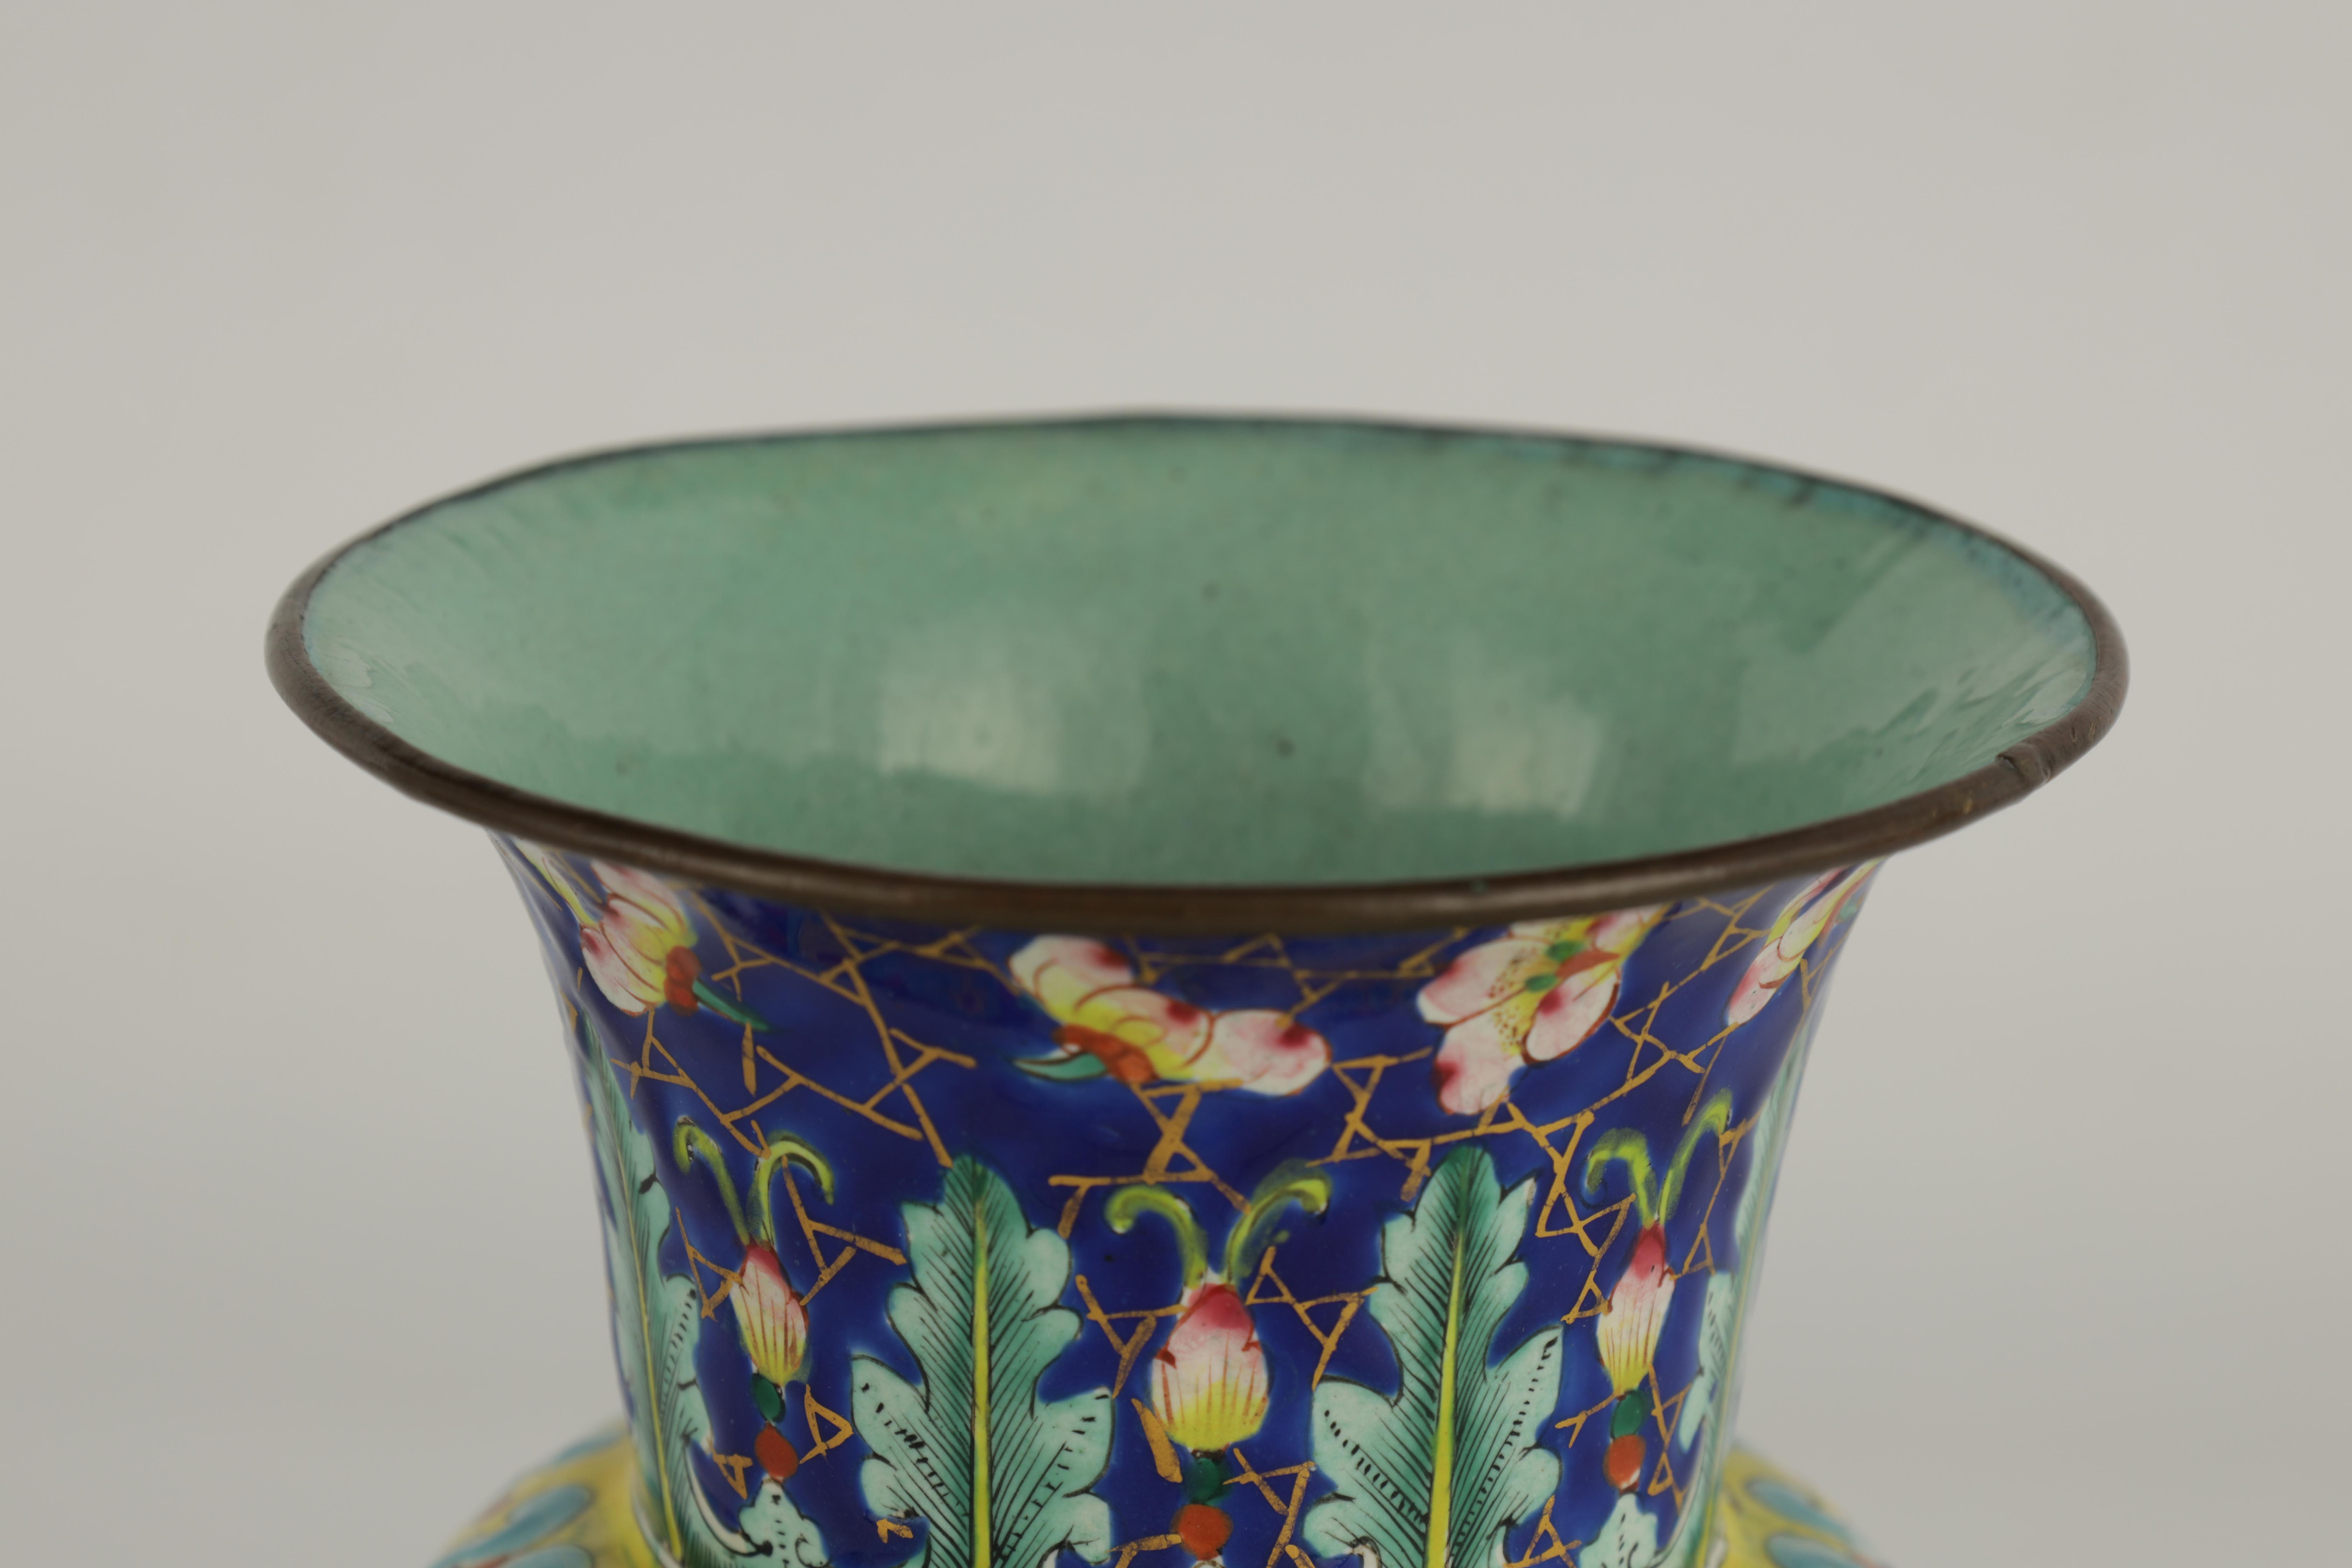 AN EARLY 19TH CENTURY CHINESE ENAMEL VASE of bulbous form with brightly coloured enamel decoration - Image 3 of 5